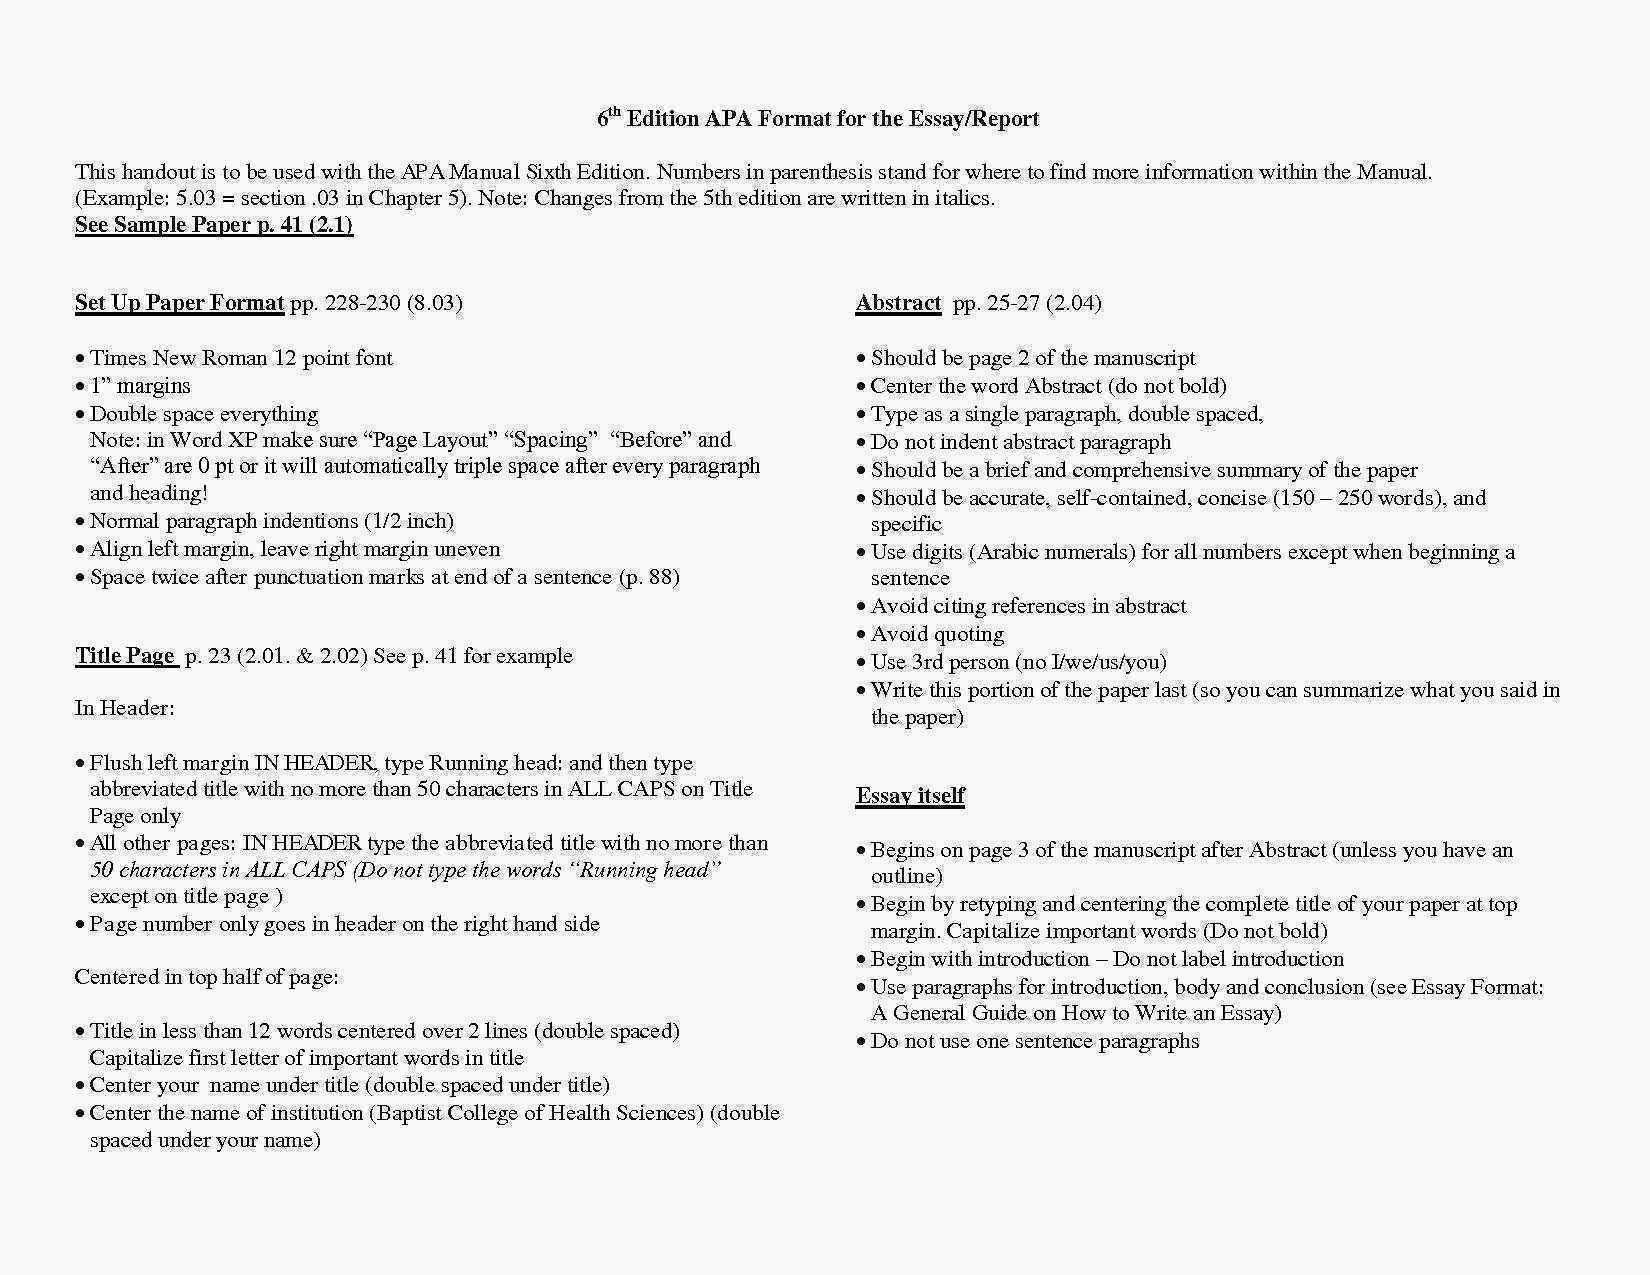 008 Magnificent Research Paper Proposal Template Apa Highest Quality Full